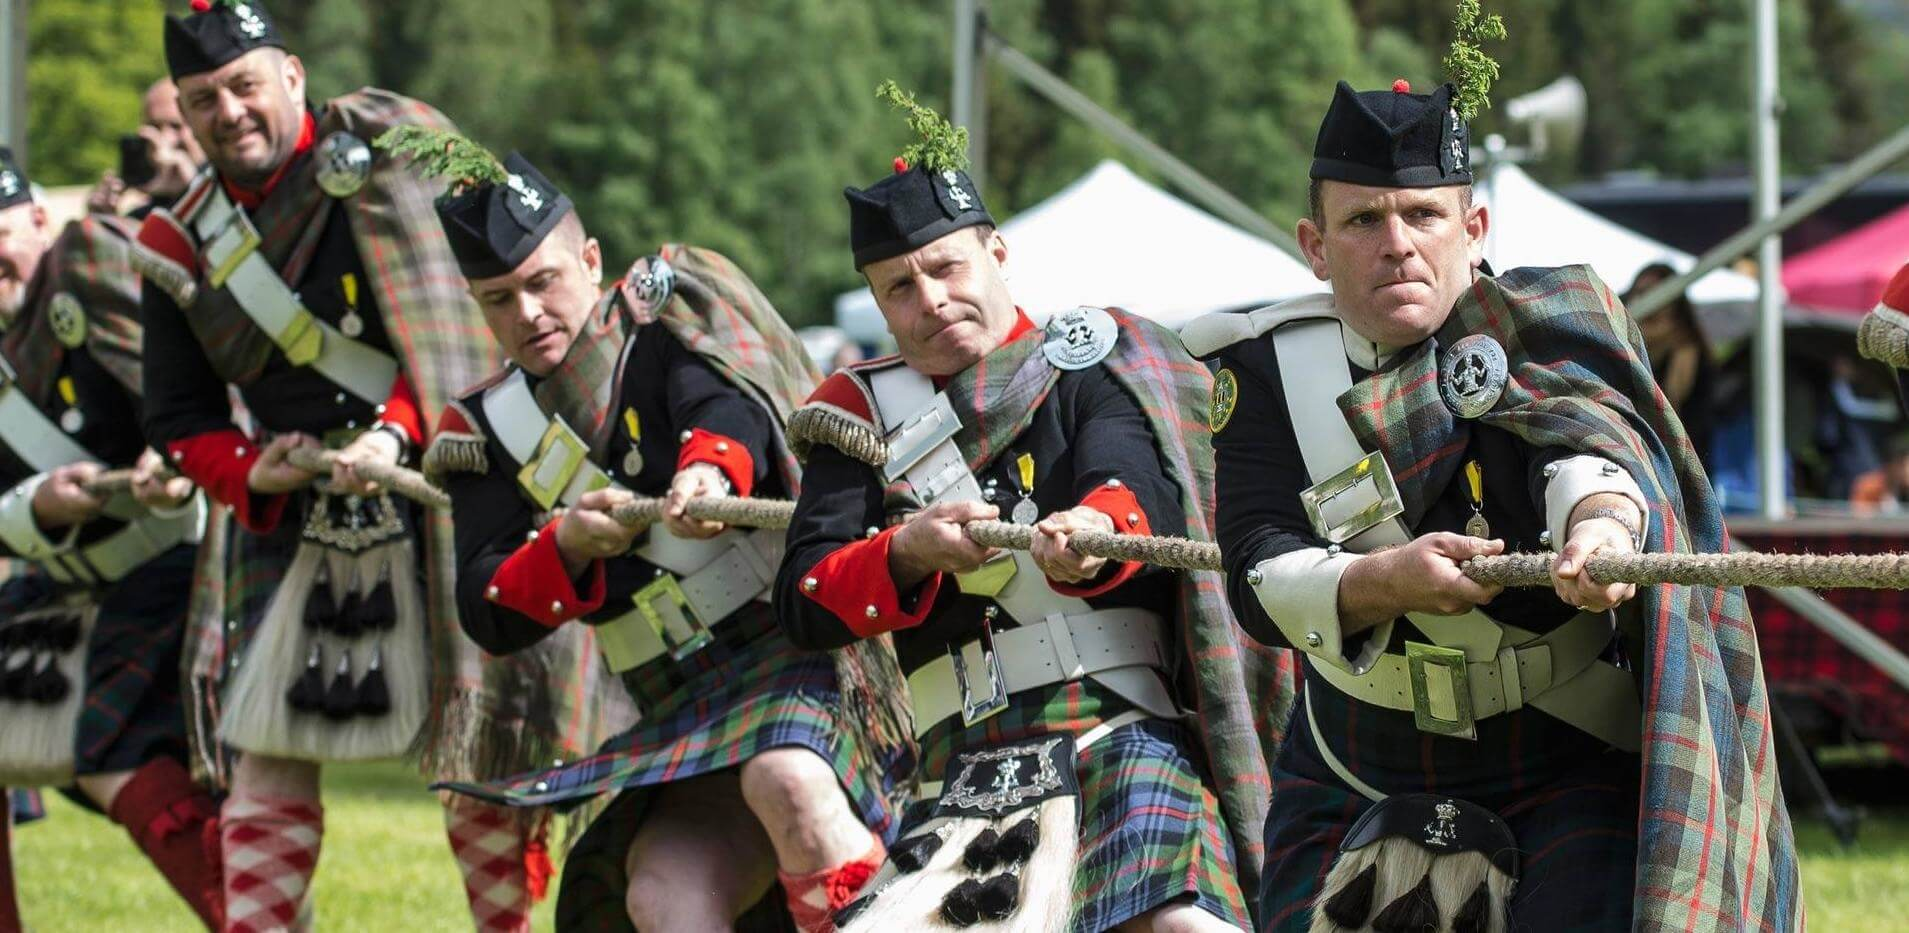 The Amsterdam Highland Games